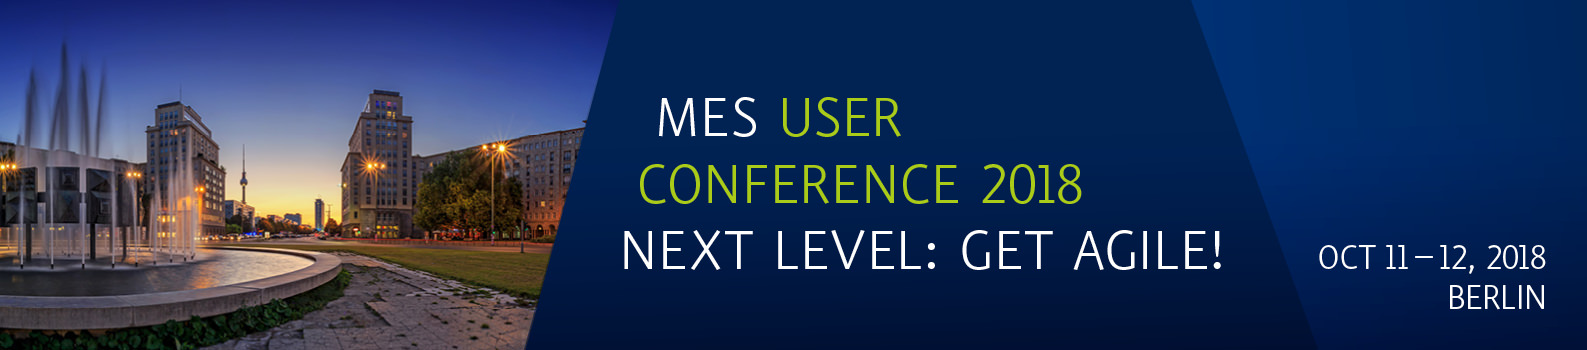 MES User Conference 2018